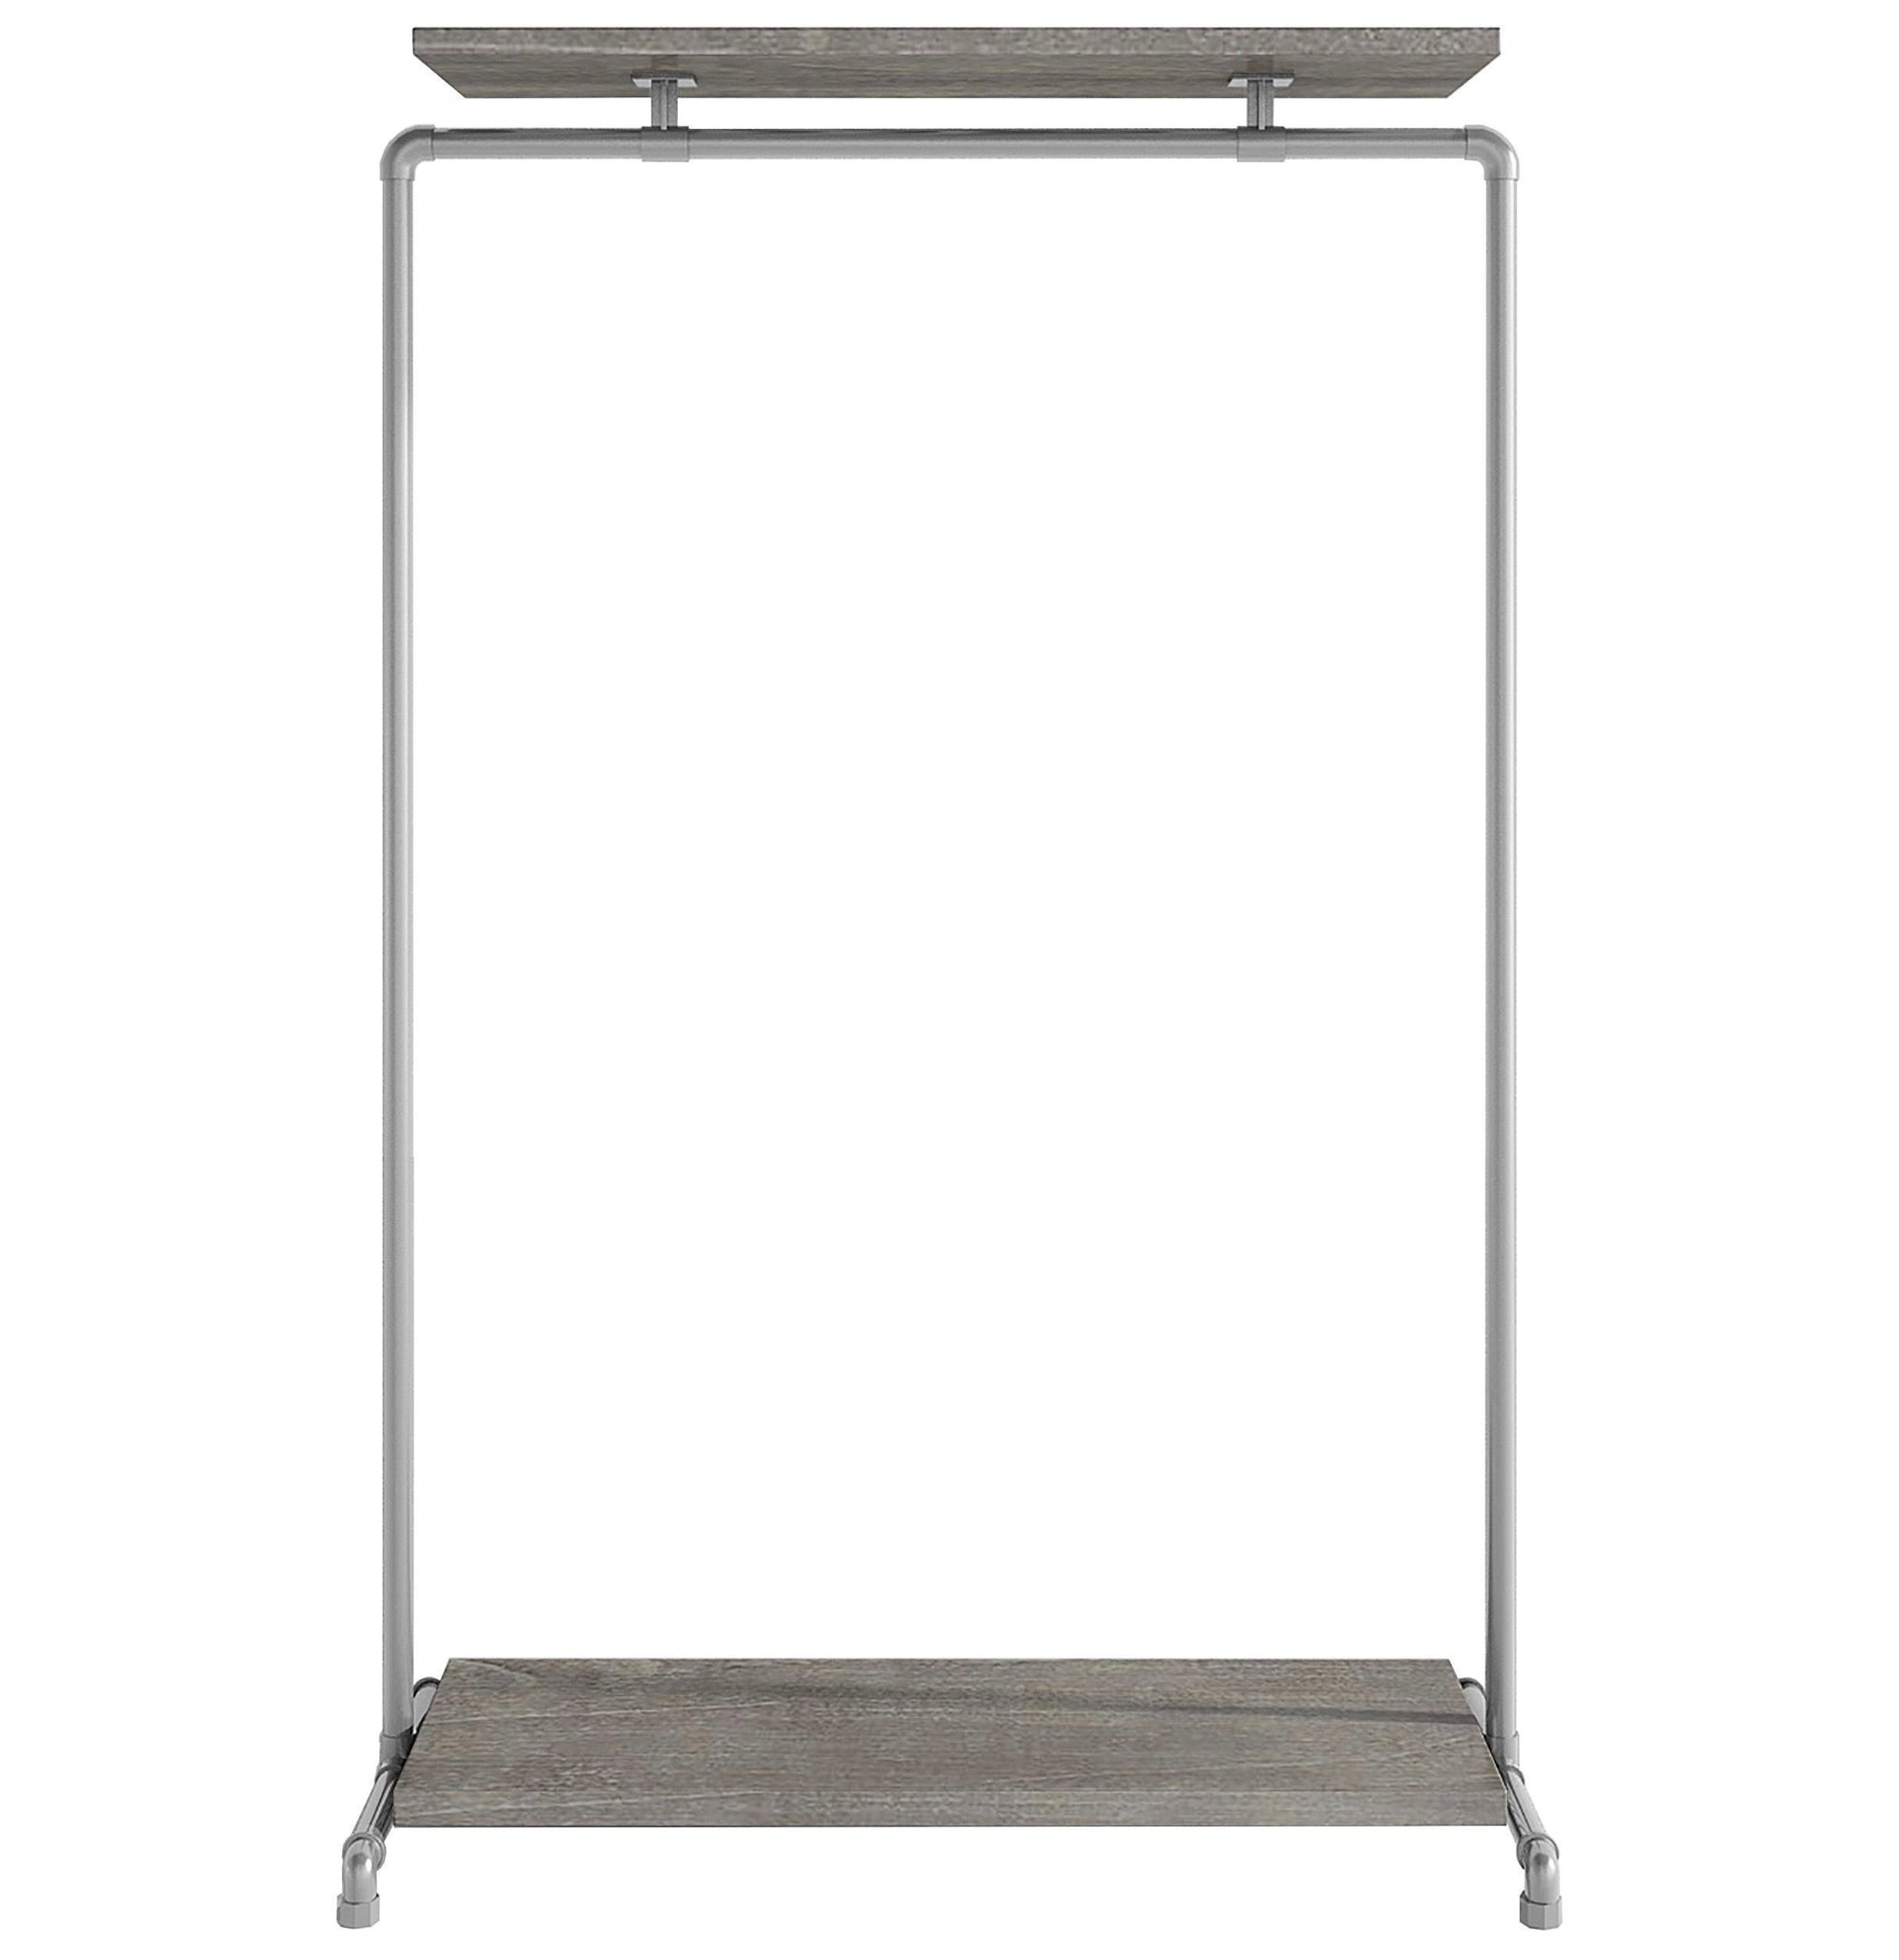 Ziito Clothes Rail B1 / 100 cm / Uden Wood Double Shelf Tøjstativ